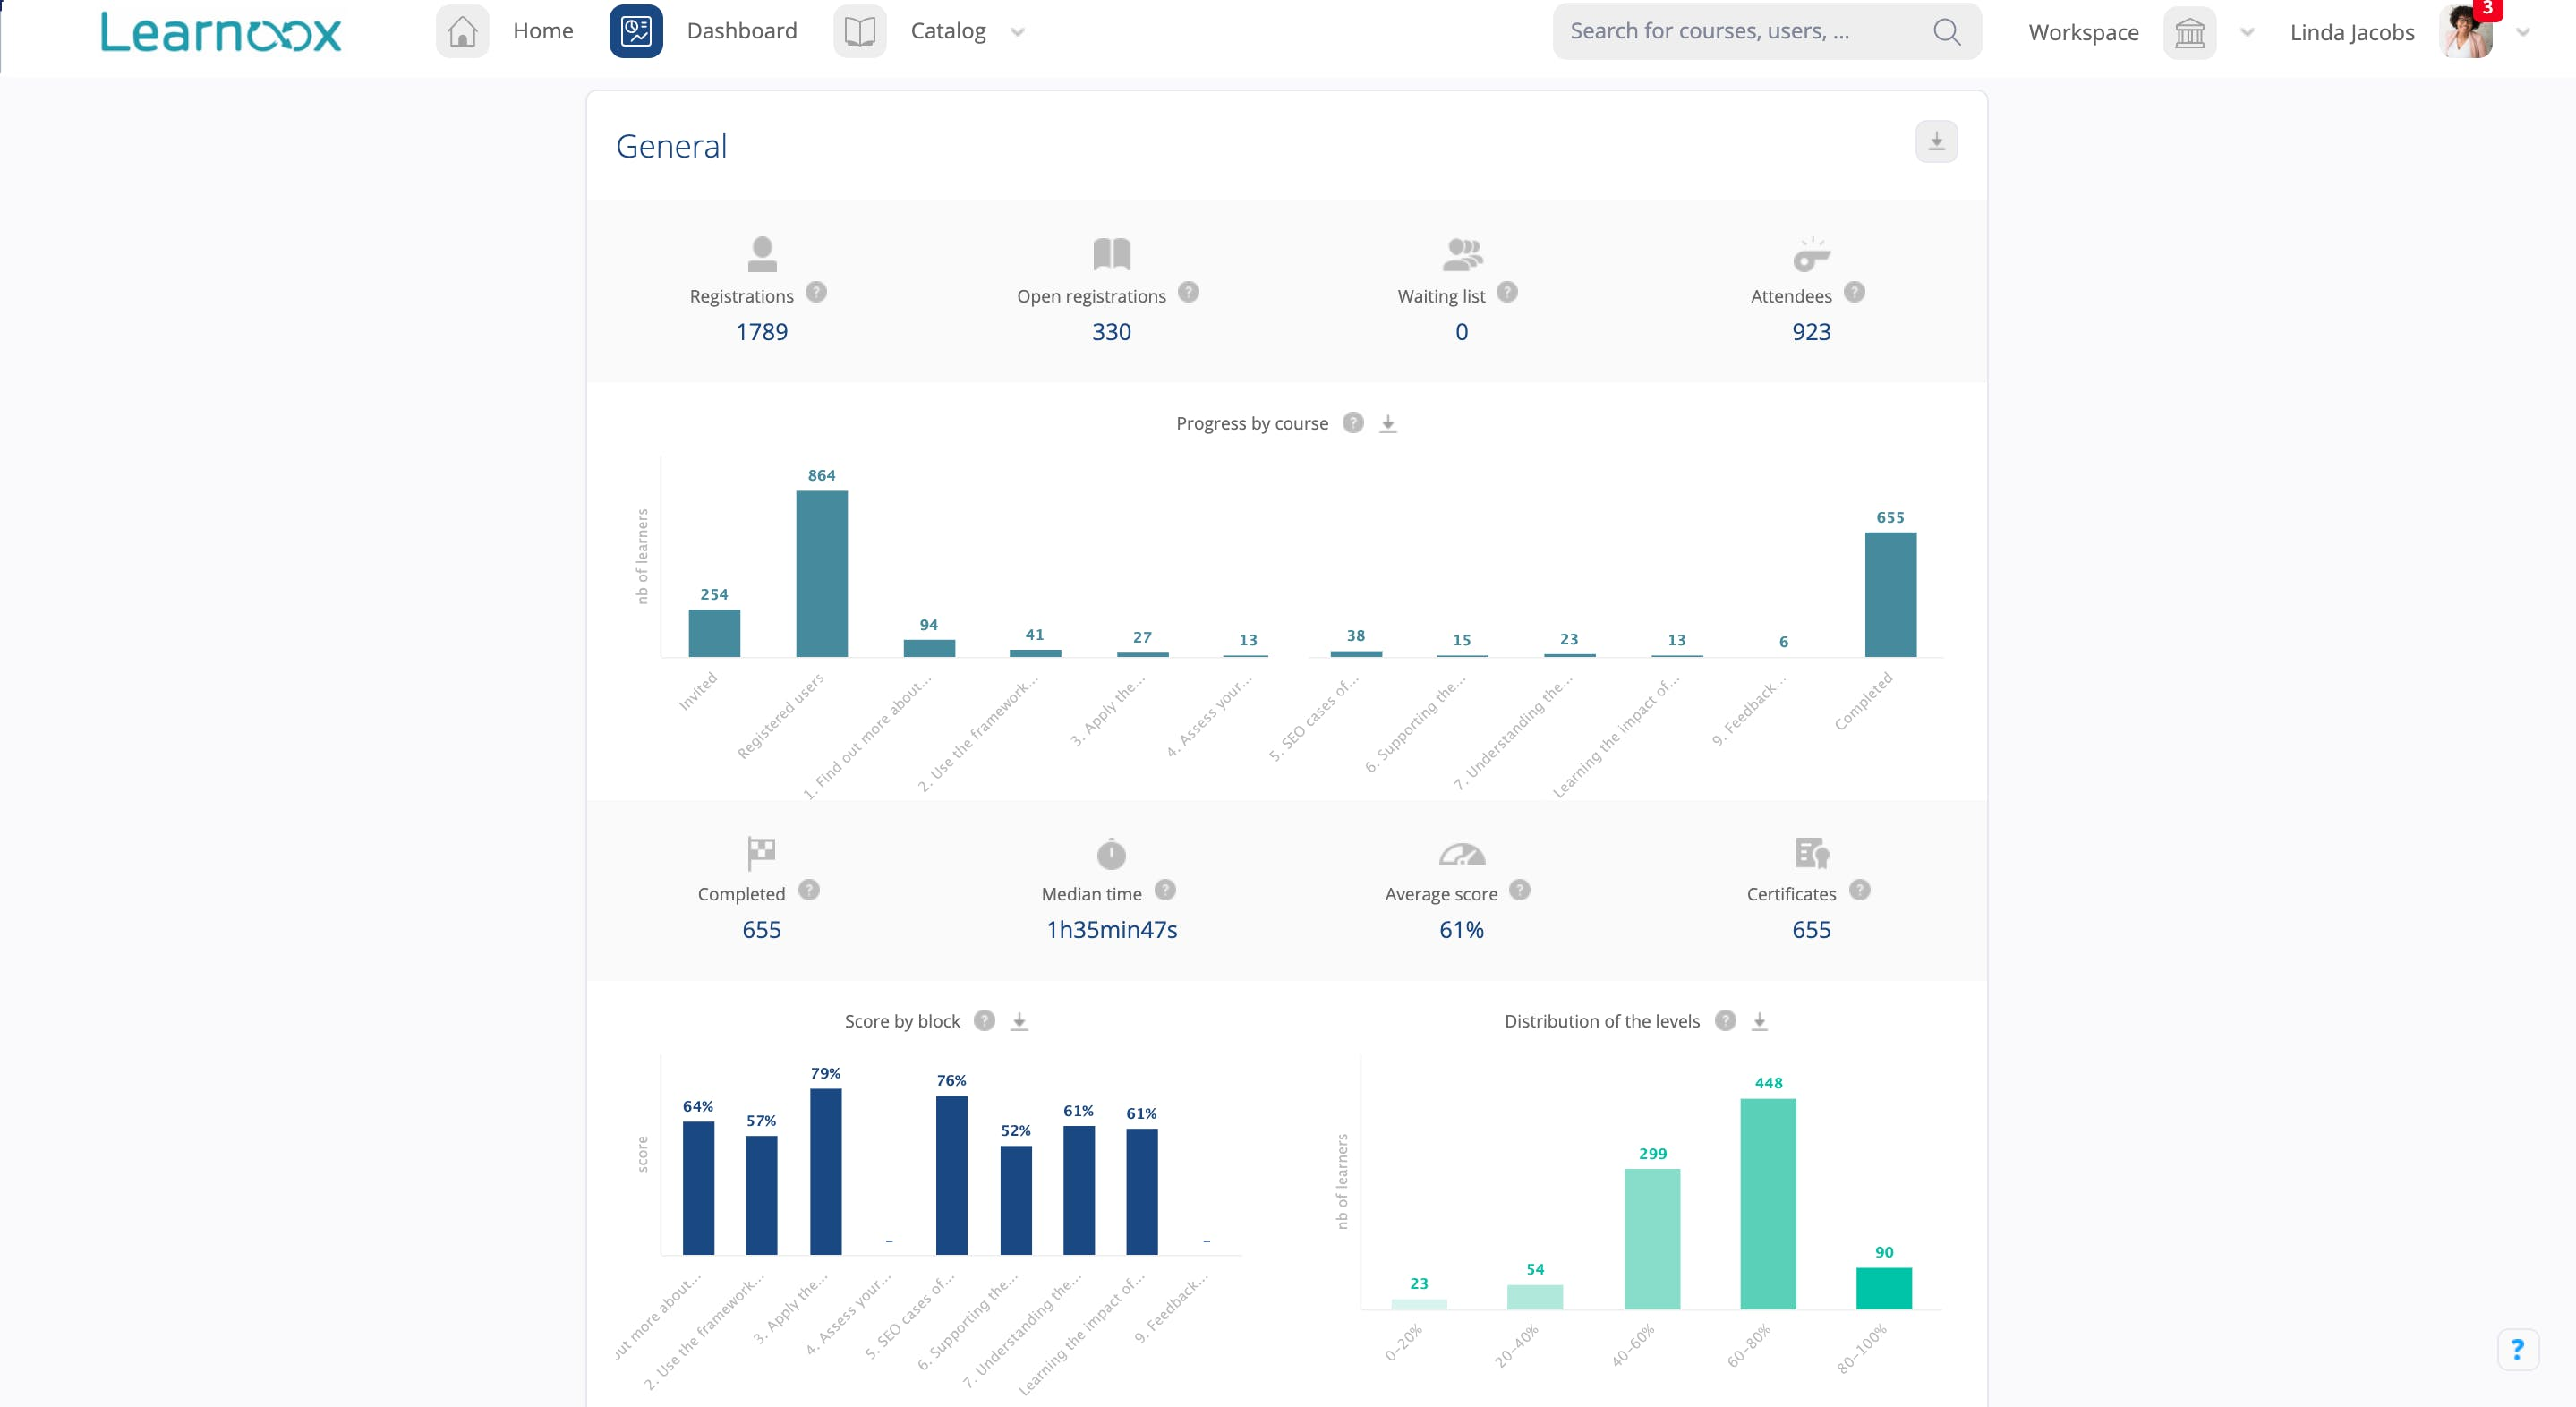 Authoring tool reporting